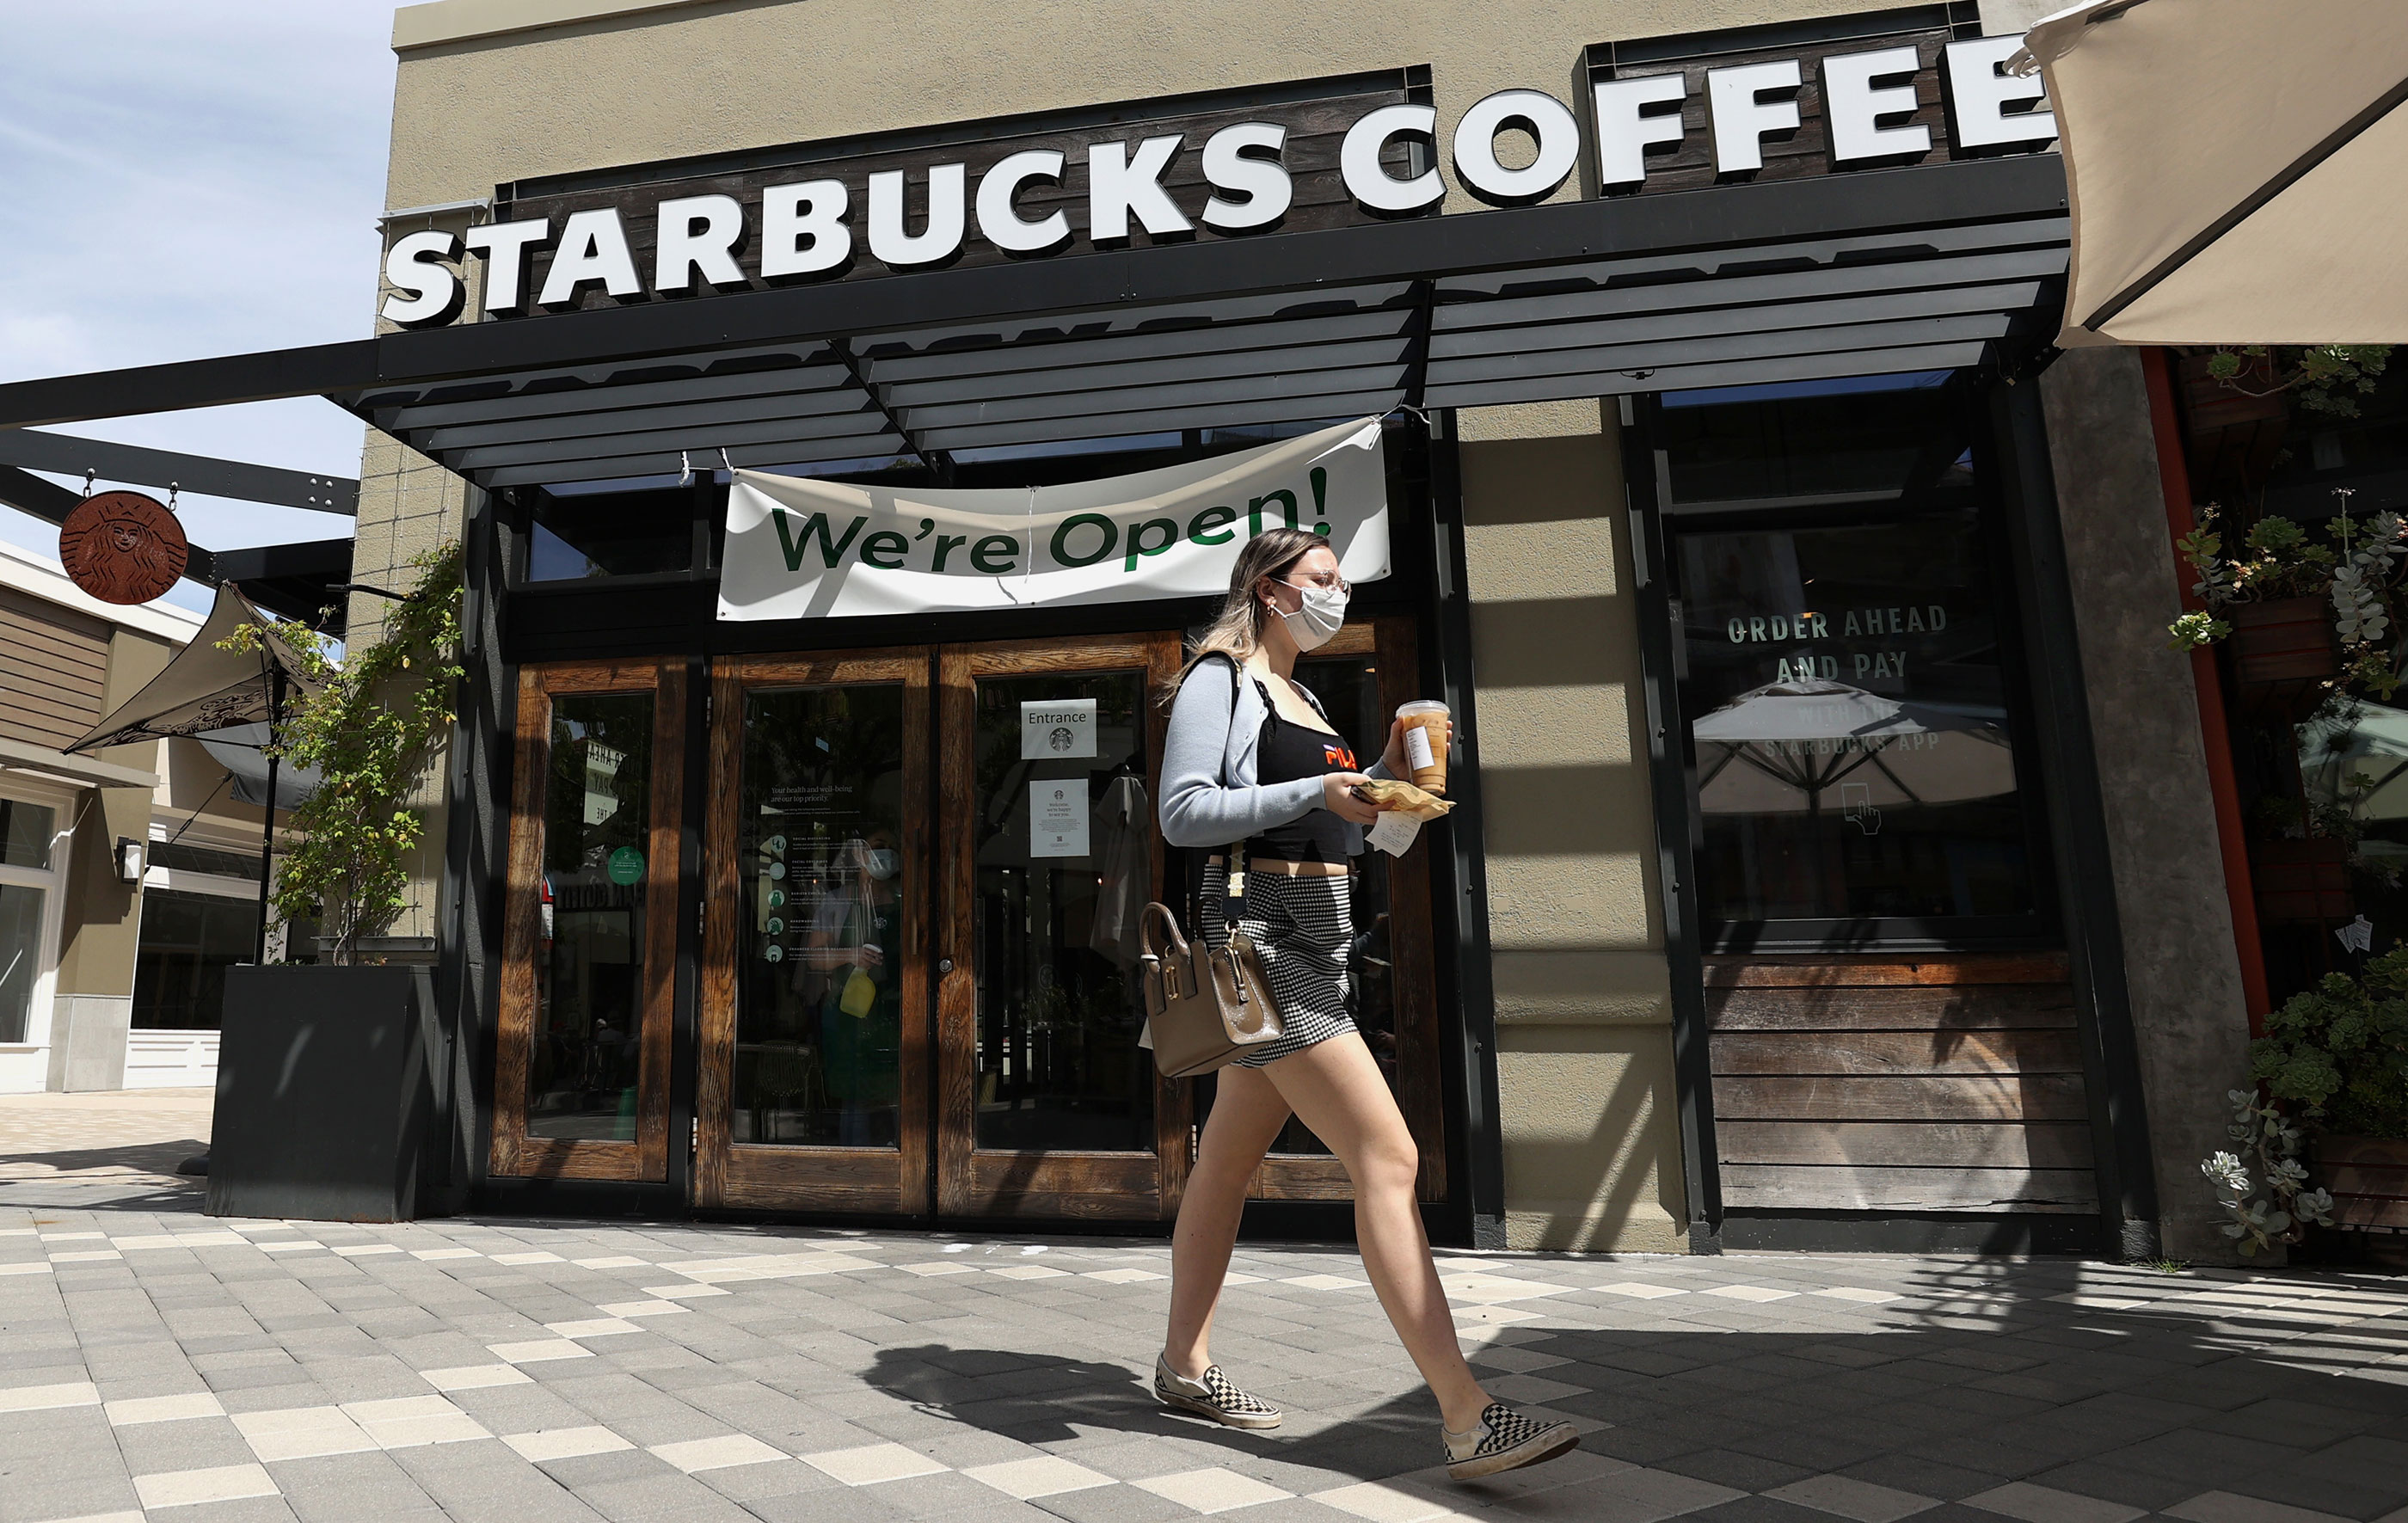 A customer walks by a Starbucks Coffee store on June 10 in Corte Madera, California.